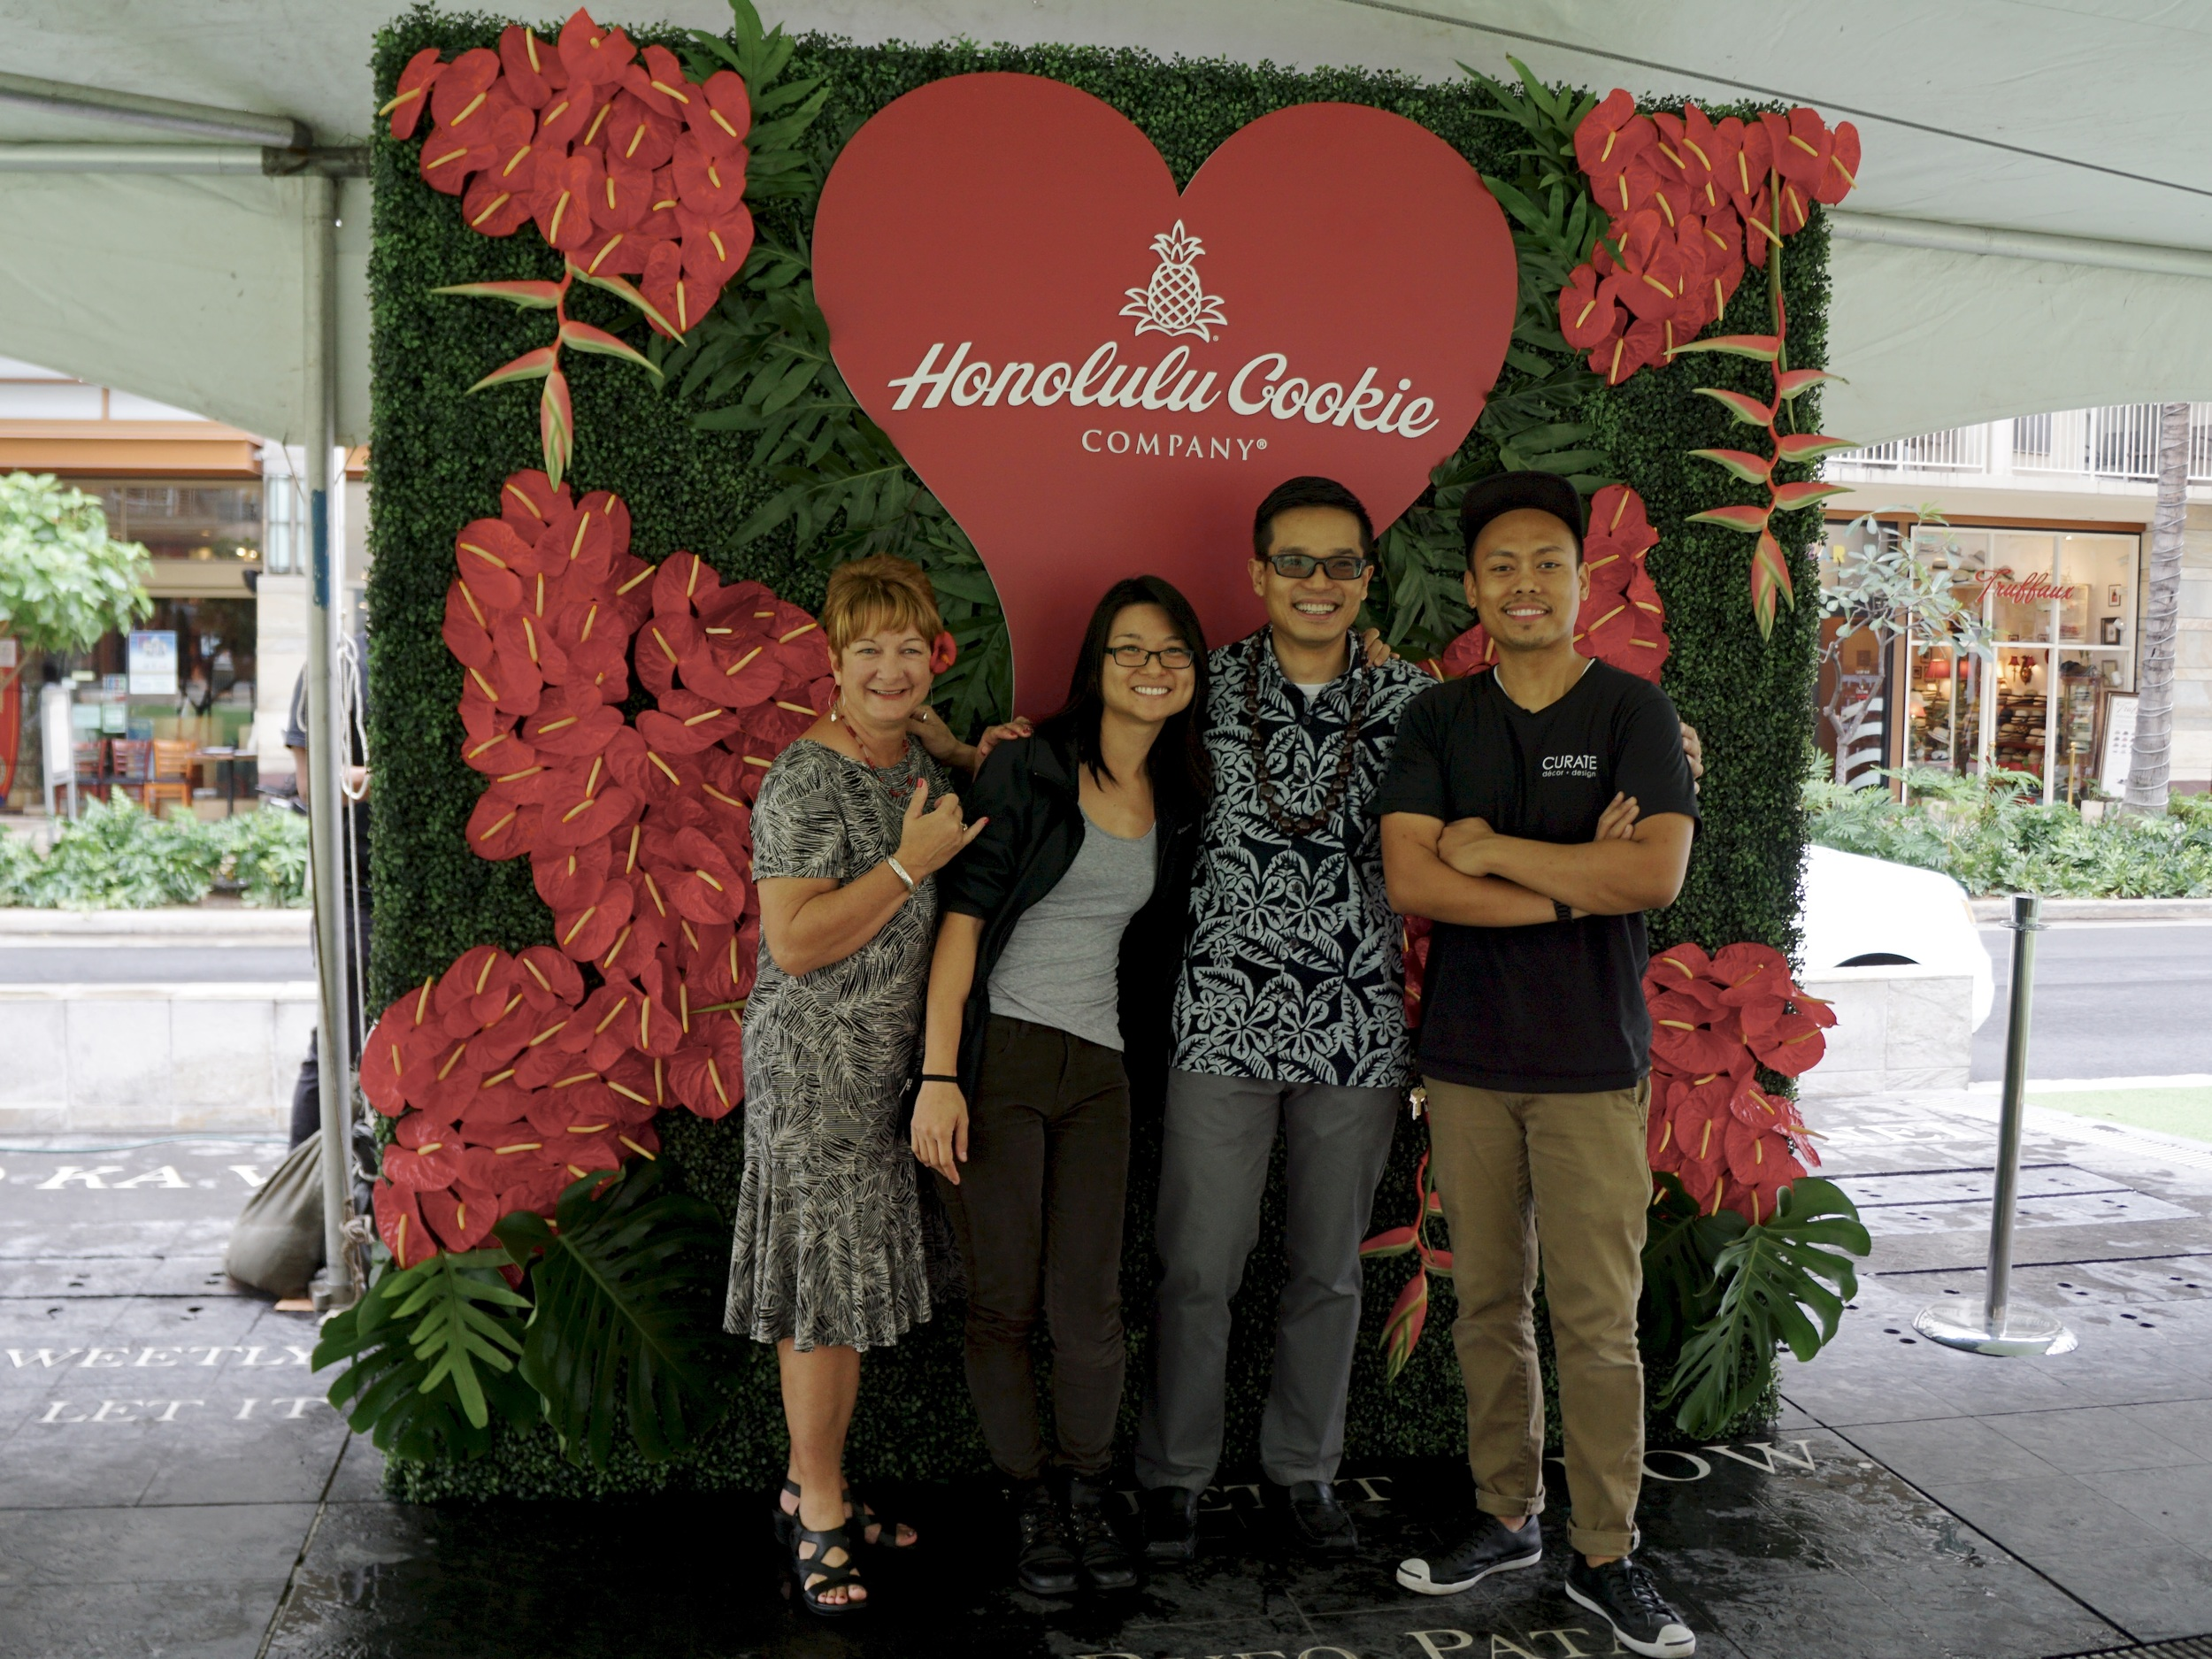 From Left:Julie Plant (Honolulu Cookie Company),Janet Tran (Designer),Herman Tam (Honolulu Cookie Company), and Abner Aquino (CURATE decor + design)